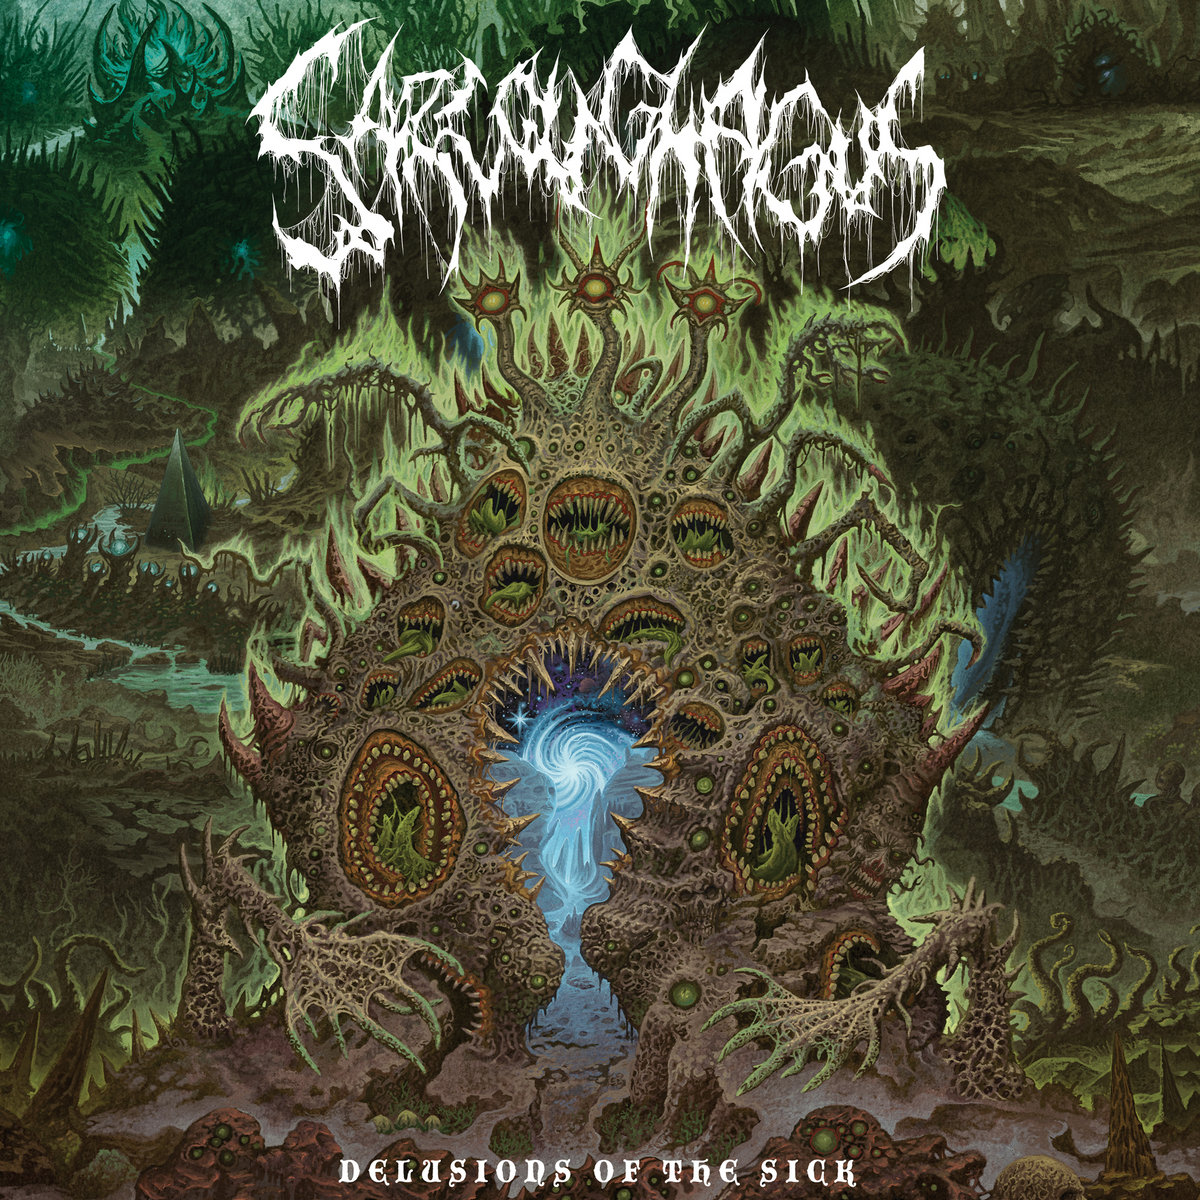 Sarcoughagus - Delusions of the Sick (2021)